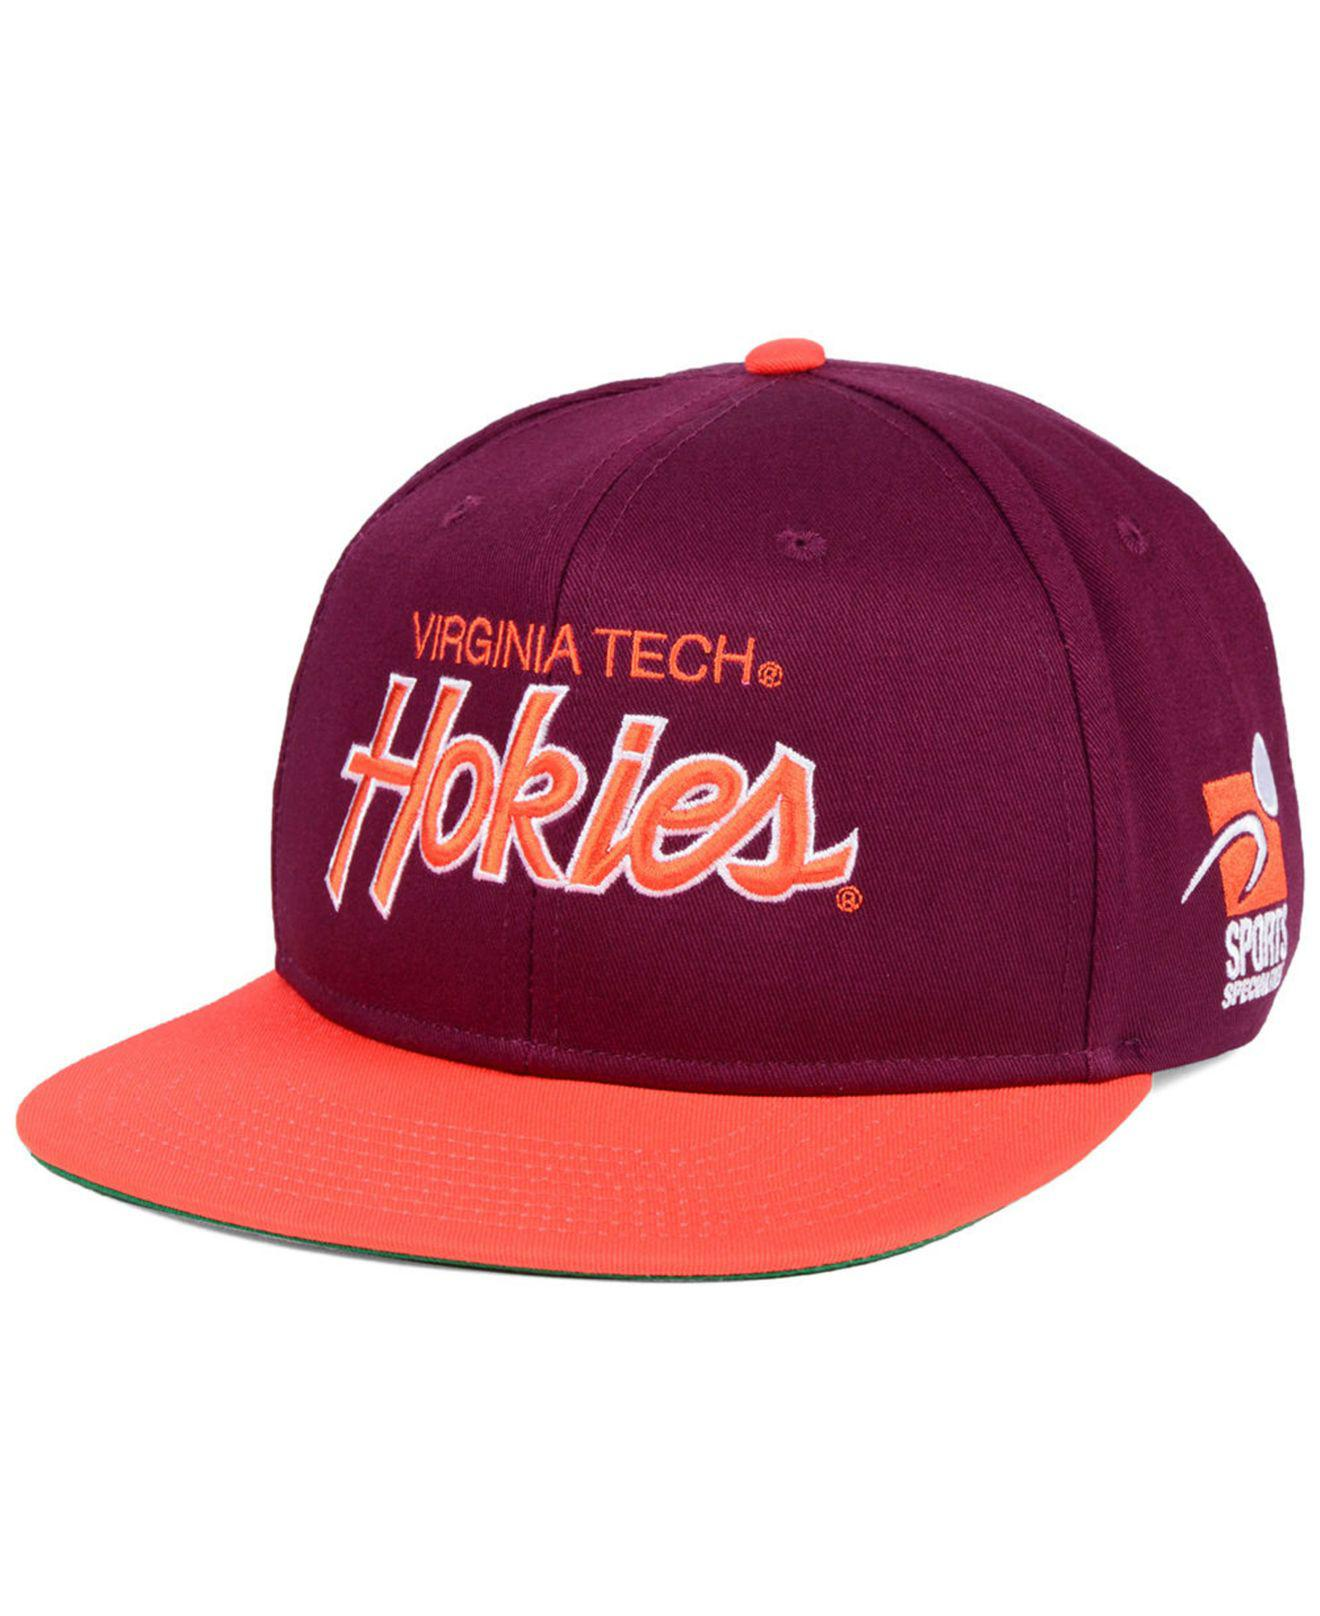 detailed look f0f3a df455 ... germany nike. mens virginia tech hokies sport specialties snapback cap  5f245 45ea9